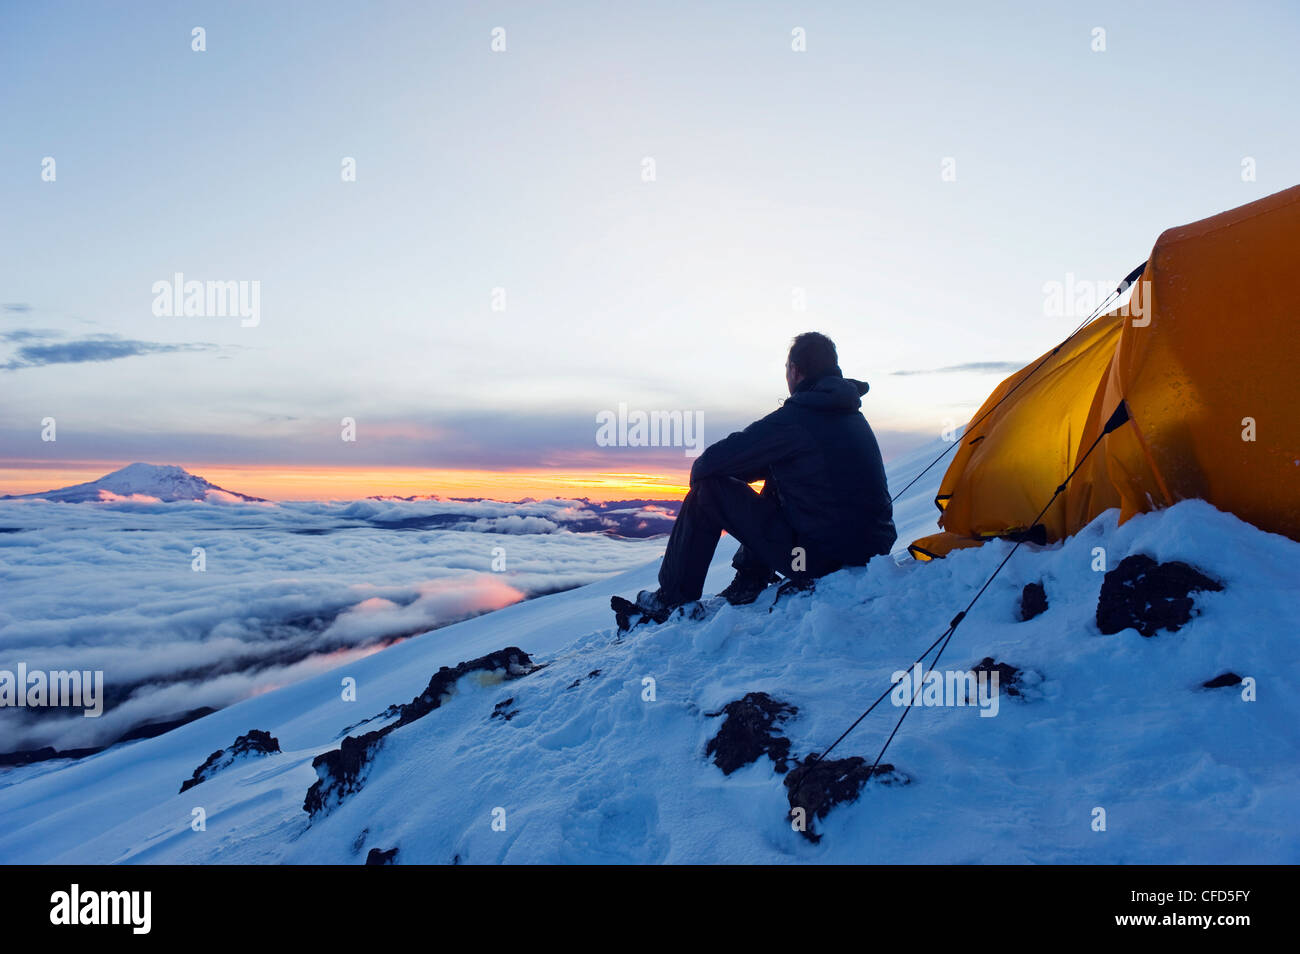 Climber looking at sunrise on Volcan Cotopaxi, 5897m, highest active volcano in the world, Ecuador, South America - Stock Image